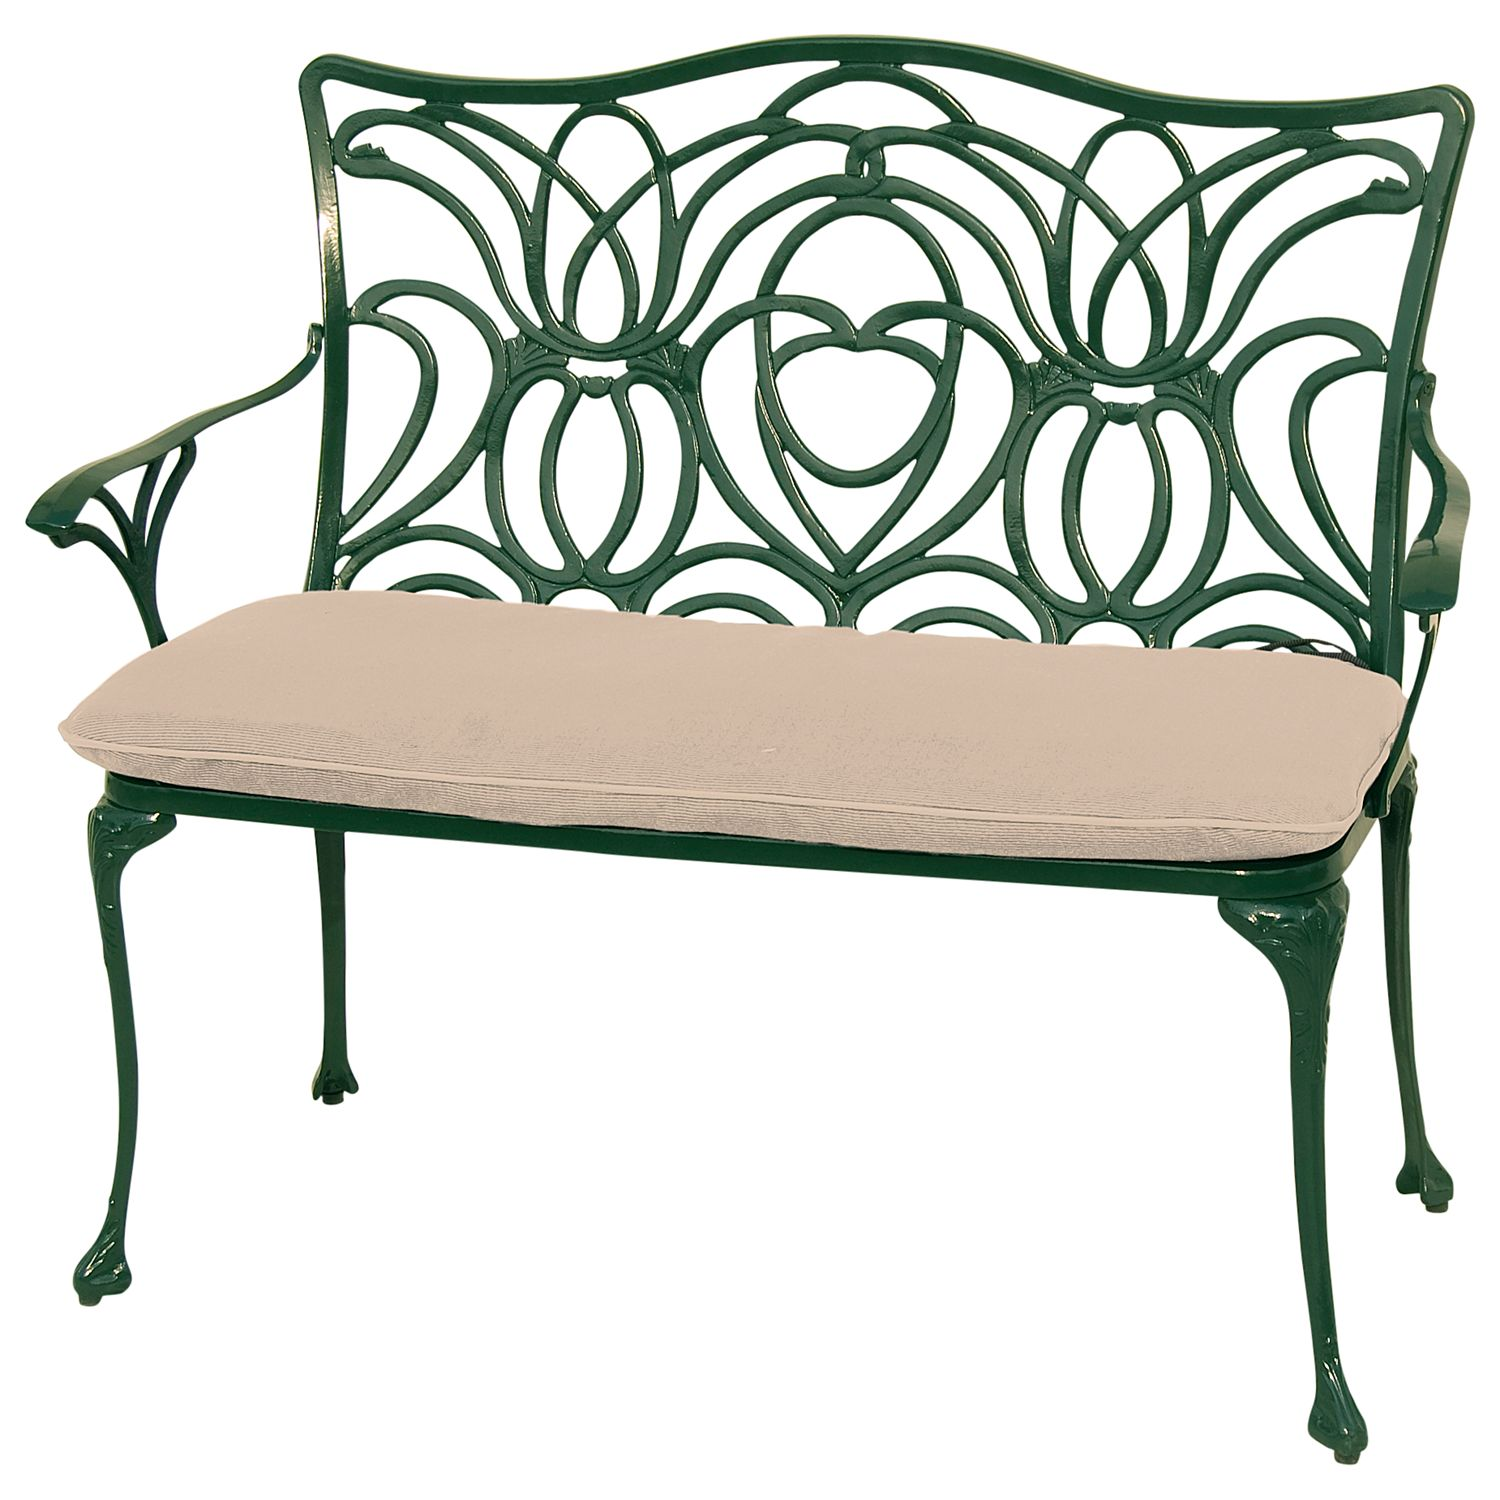 Leisuregrow Norfolk Garden Bench Green